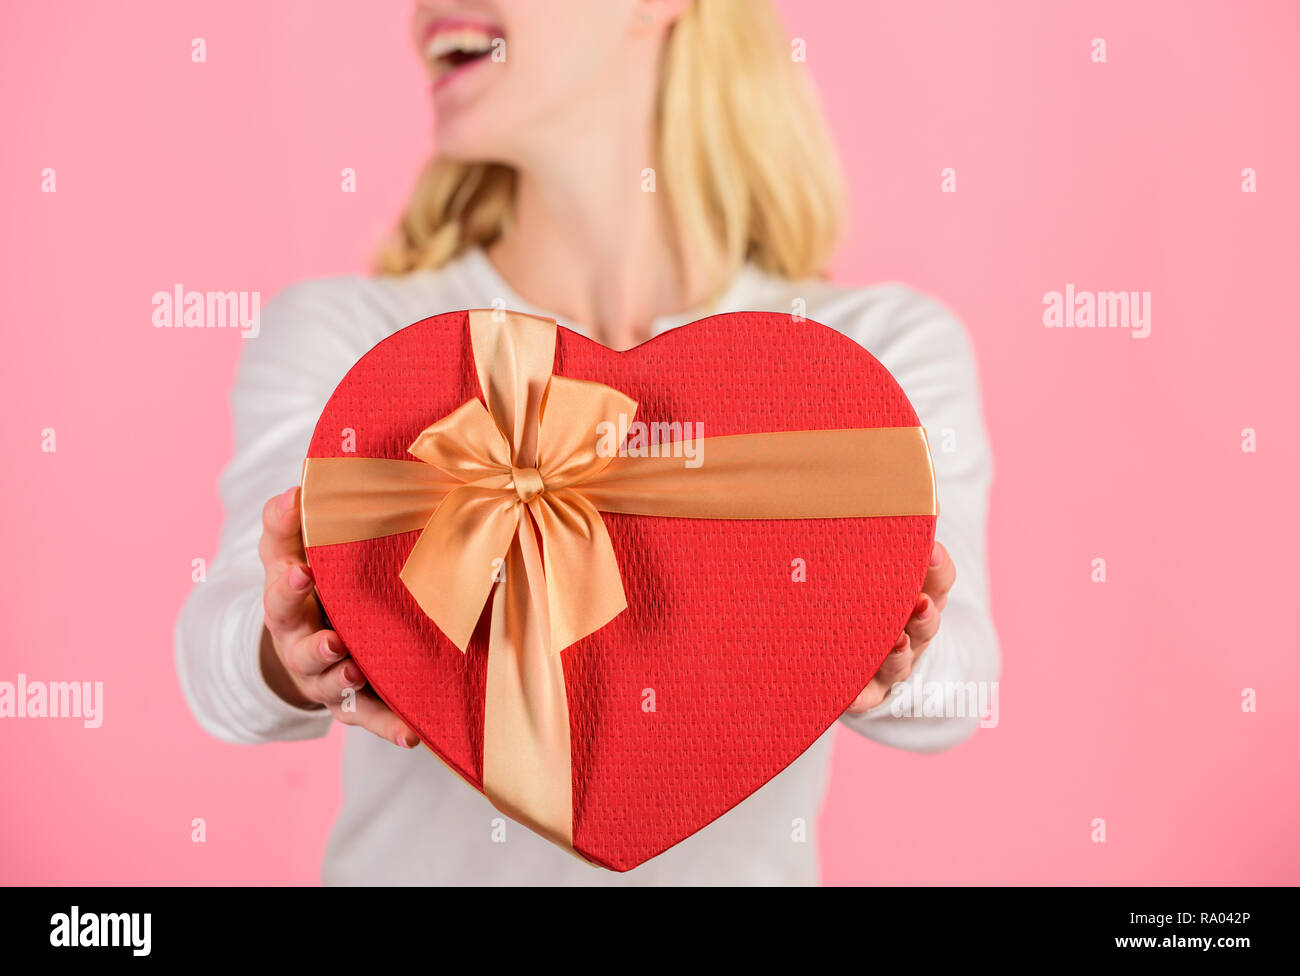 Prepared Something Special For Him She Romantic Person Valentines